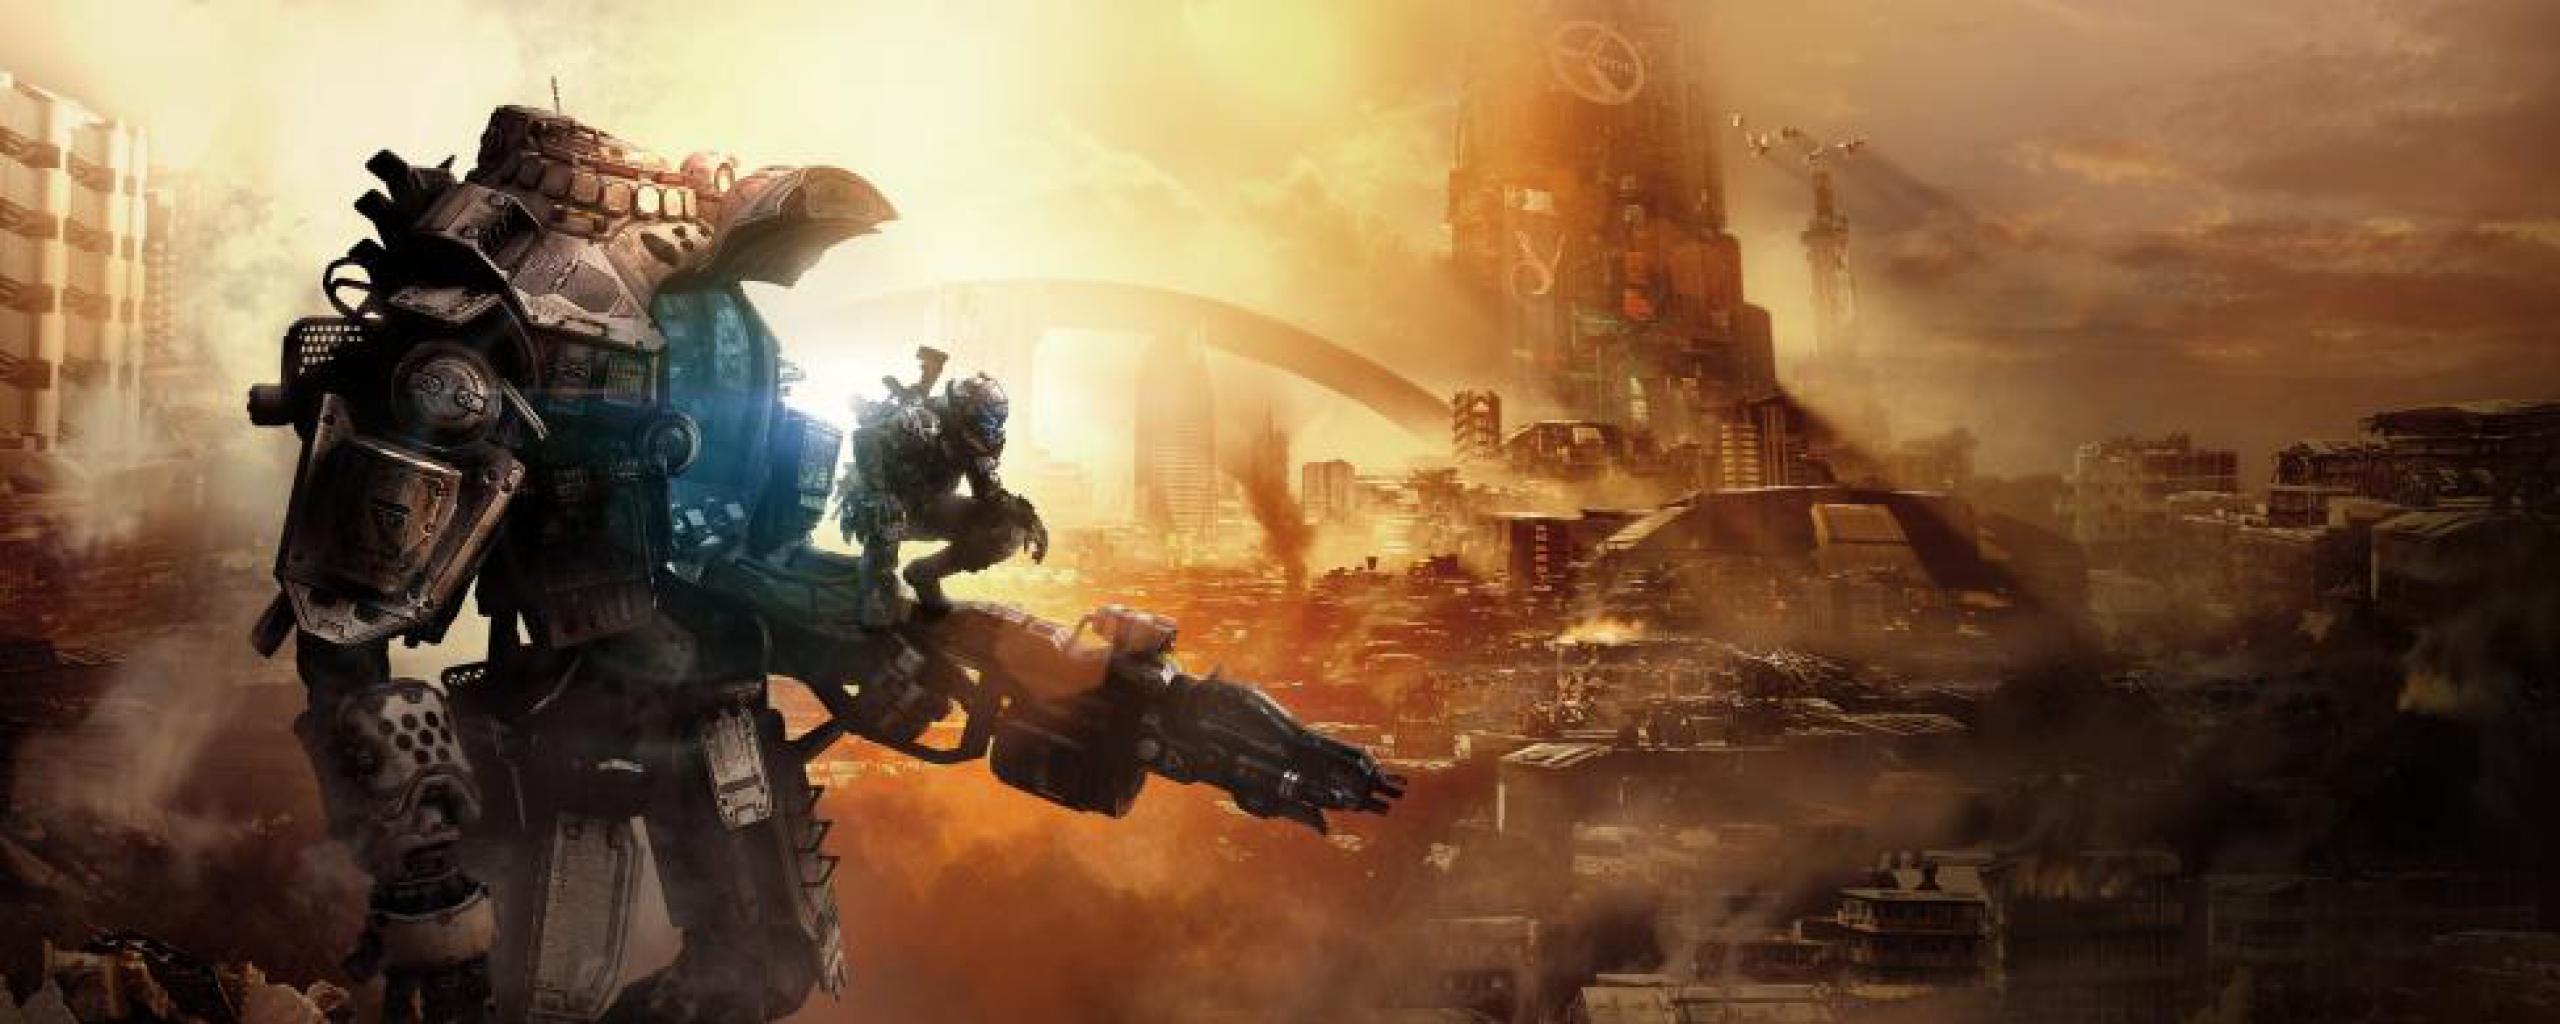 Game Respawn entertainment Action Wallpaper Background Dual Monitor 2560x1024